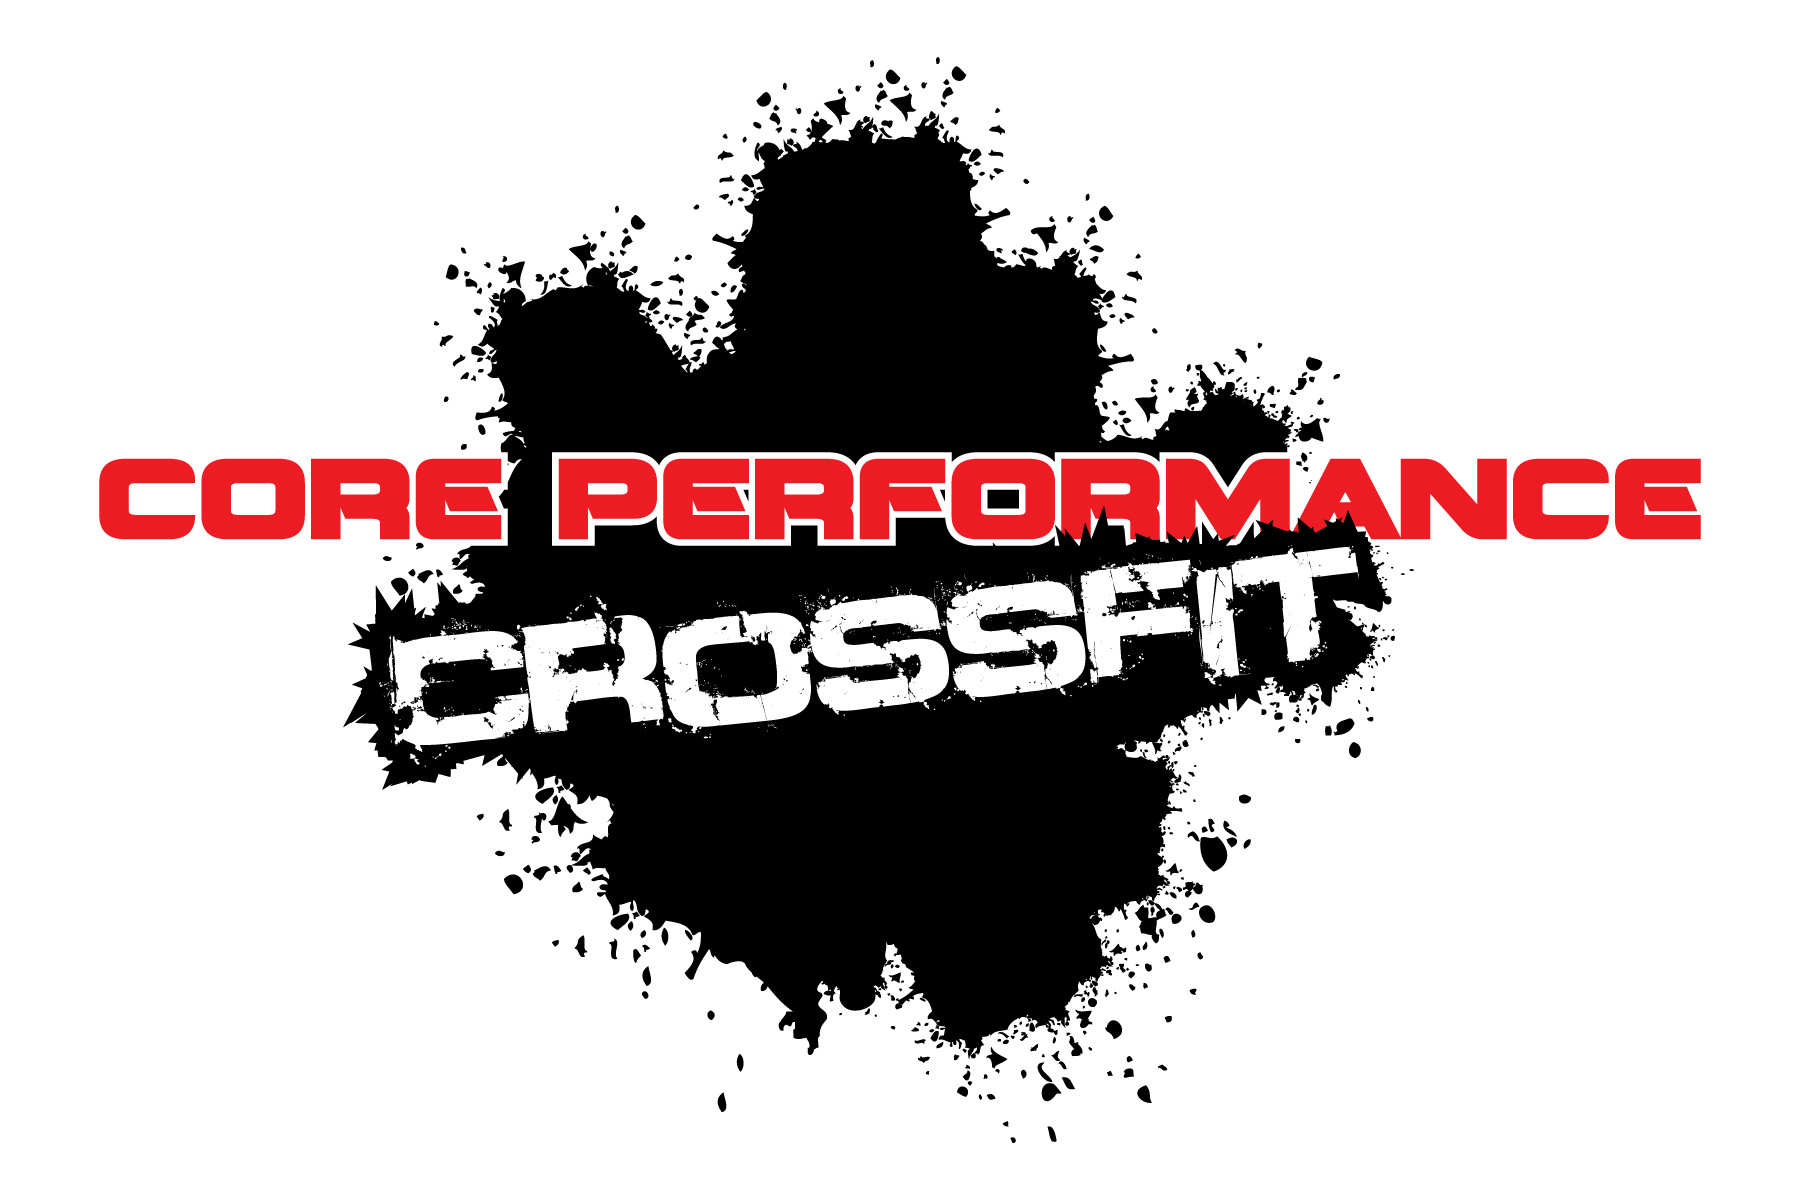 Core Performance CrossFit_Final_300 copy.jpg